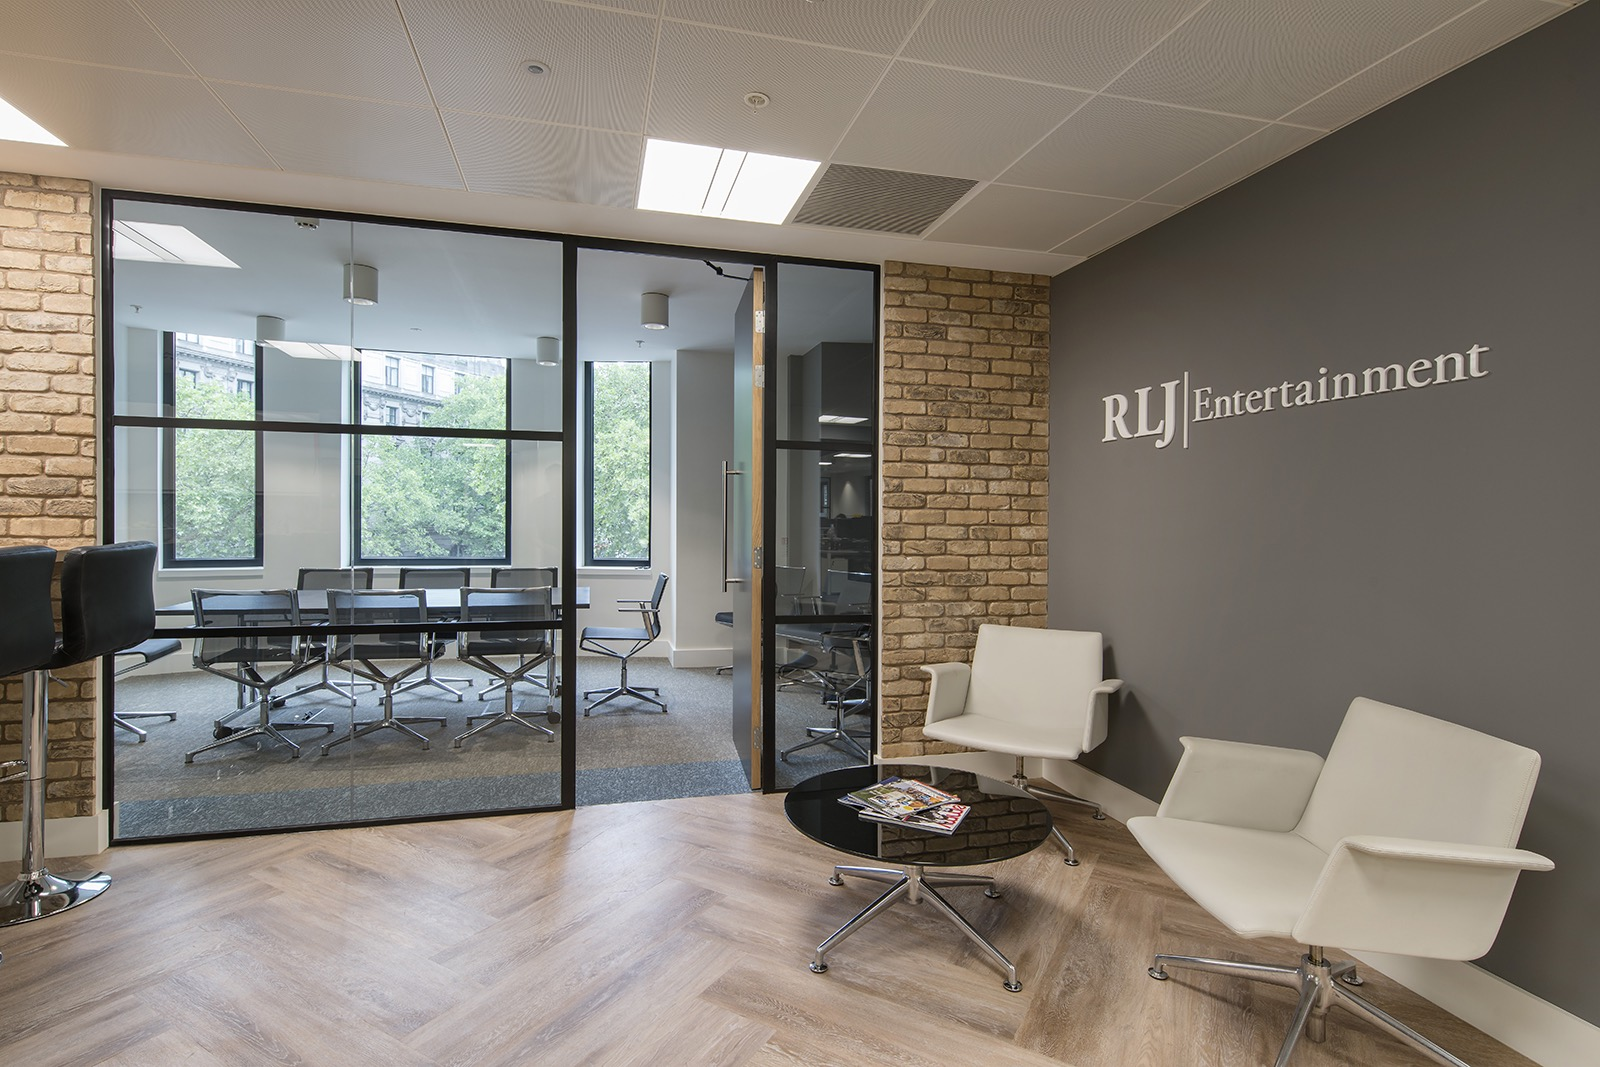 rlj-entertainment-london-office-2